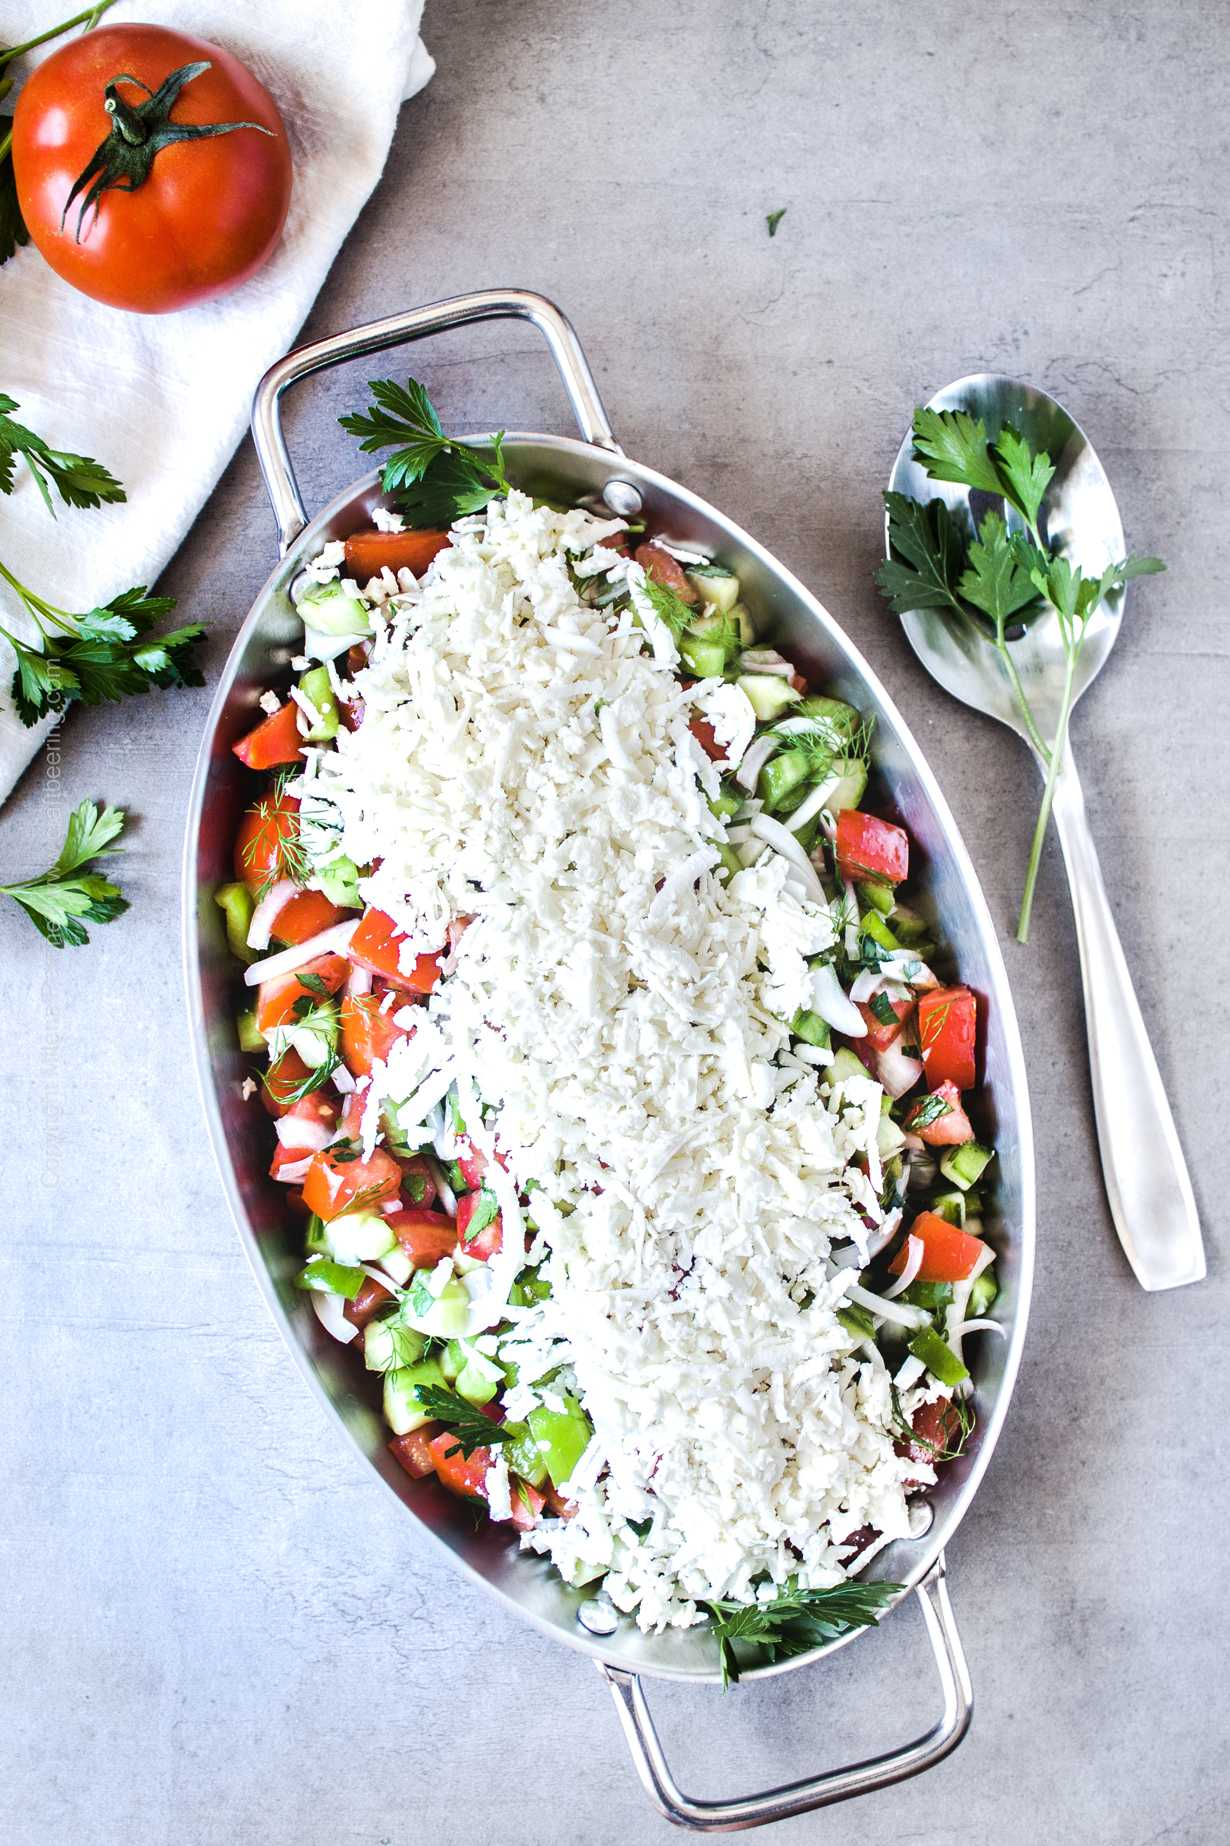 Vibrant tomato cucumber salad with feta cheese.